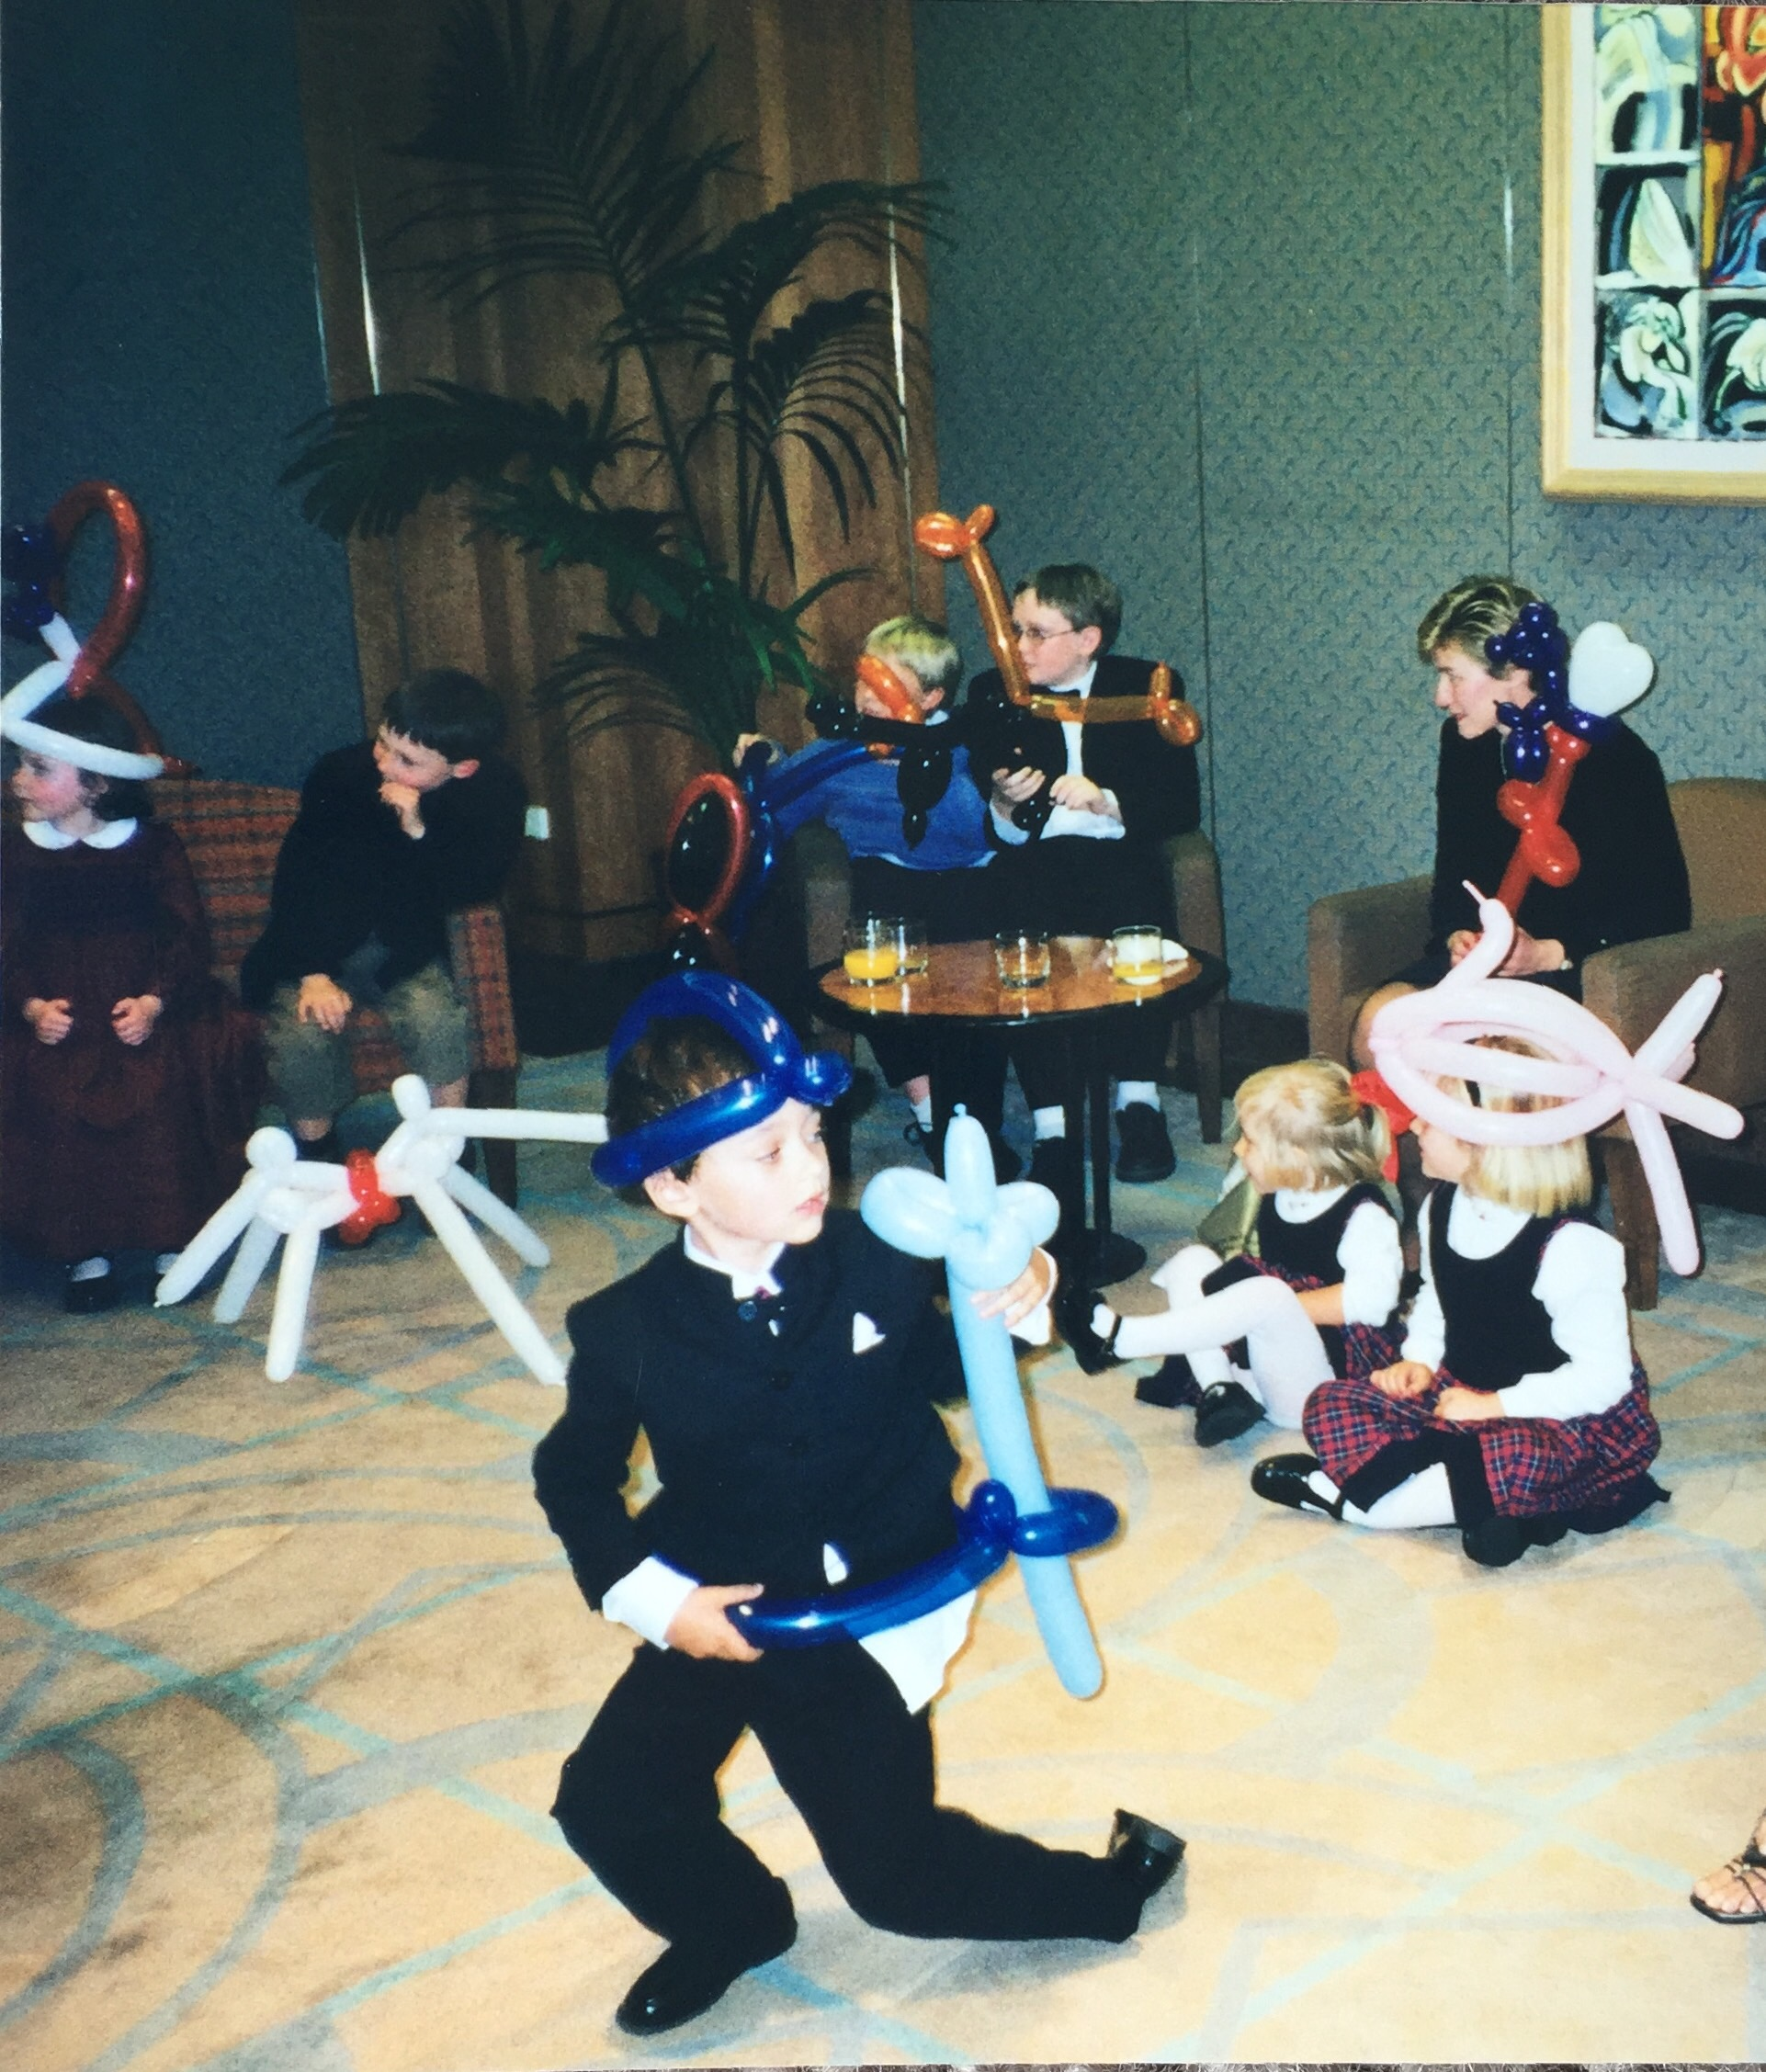 With apologies to Lauren, James, Sam, Robbie, Duncan, Emily and Kate (and my cousin Judy!) for unearthing this photo from so many years ago!